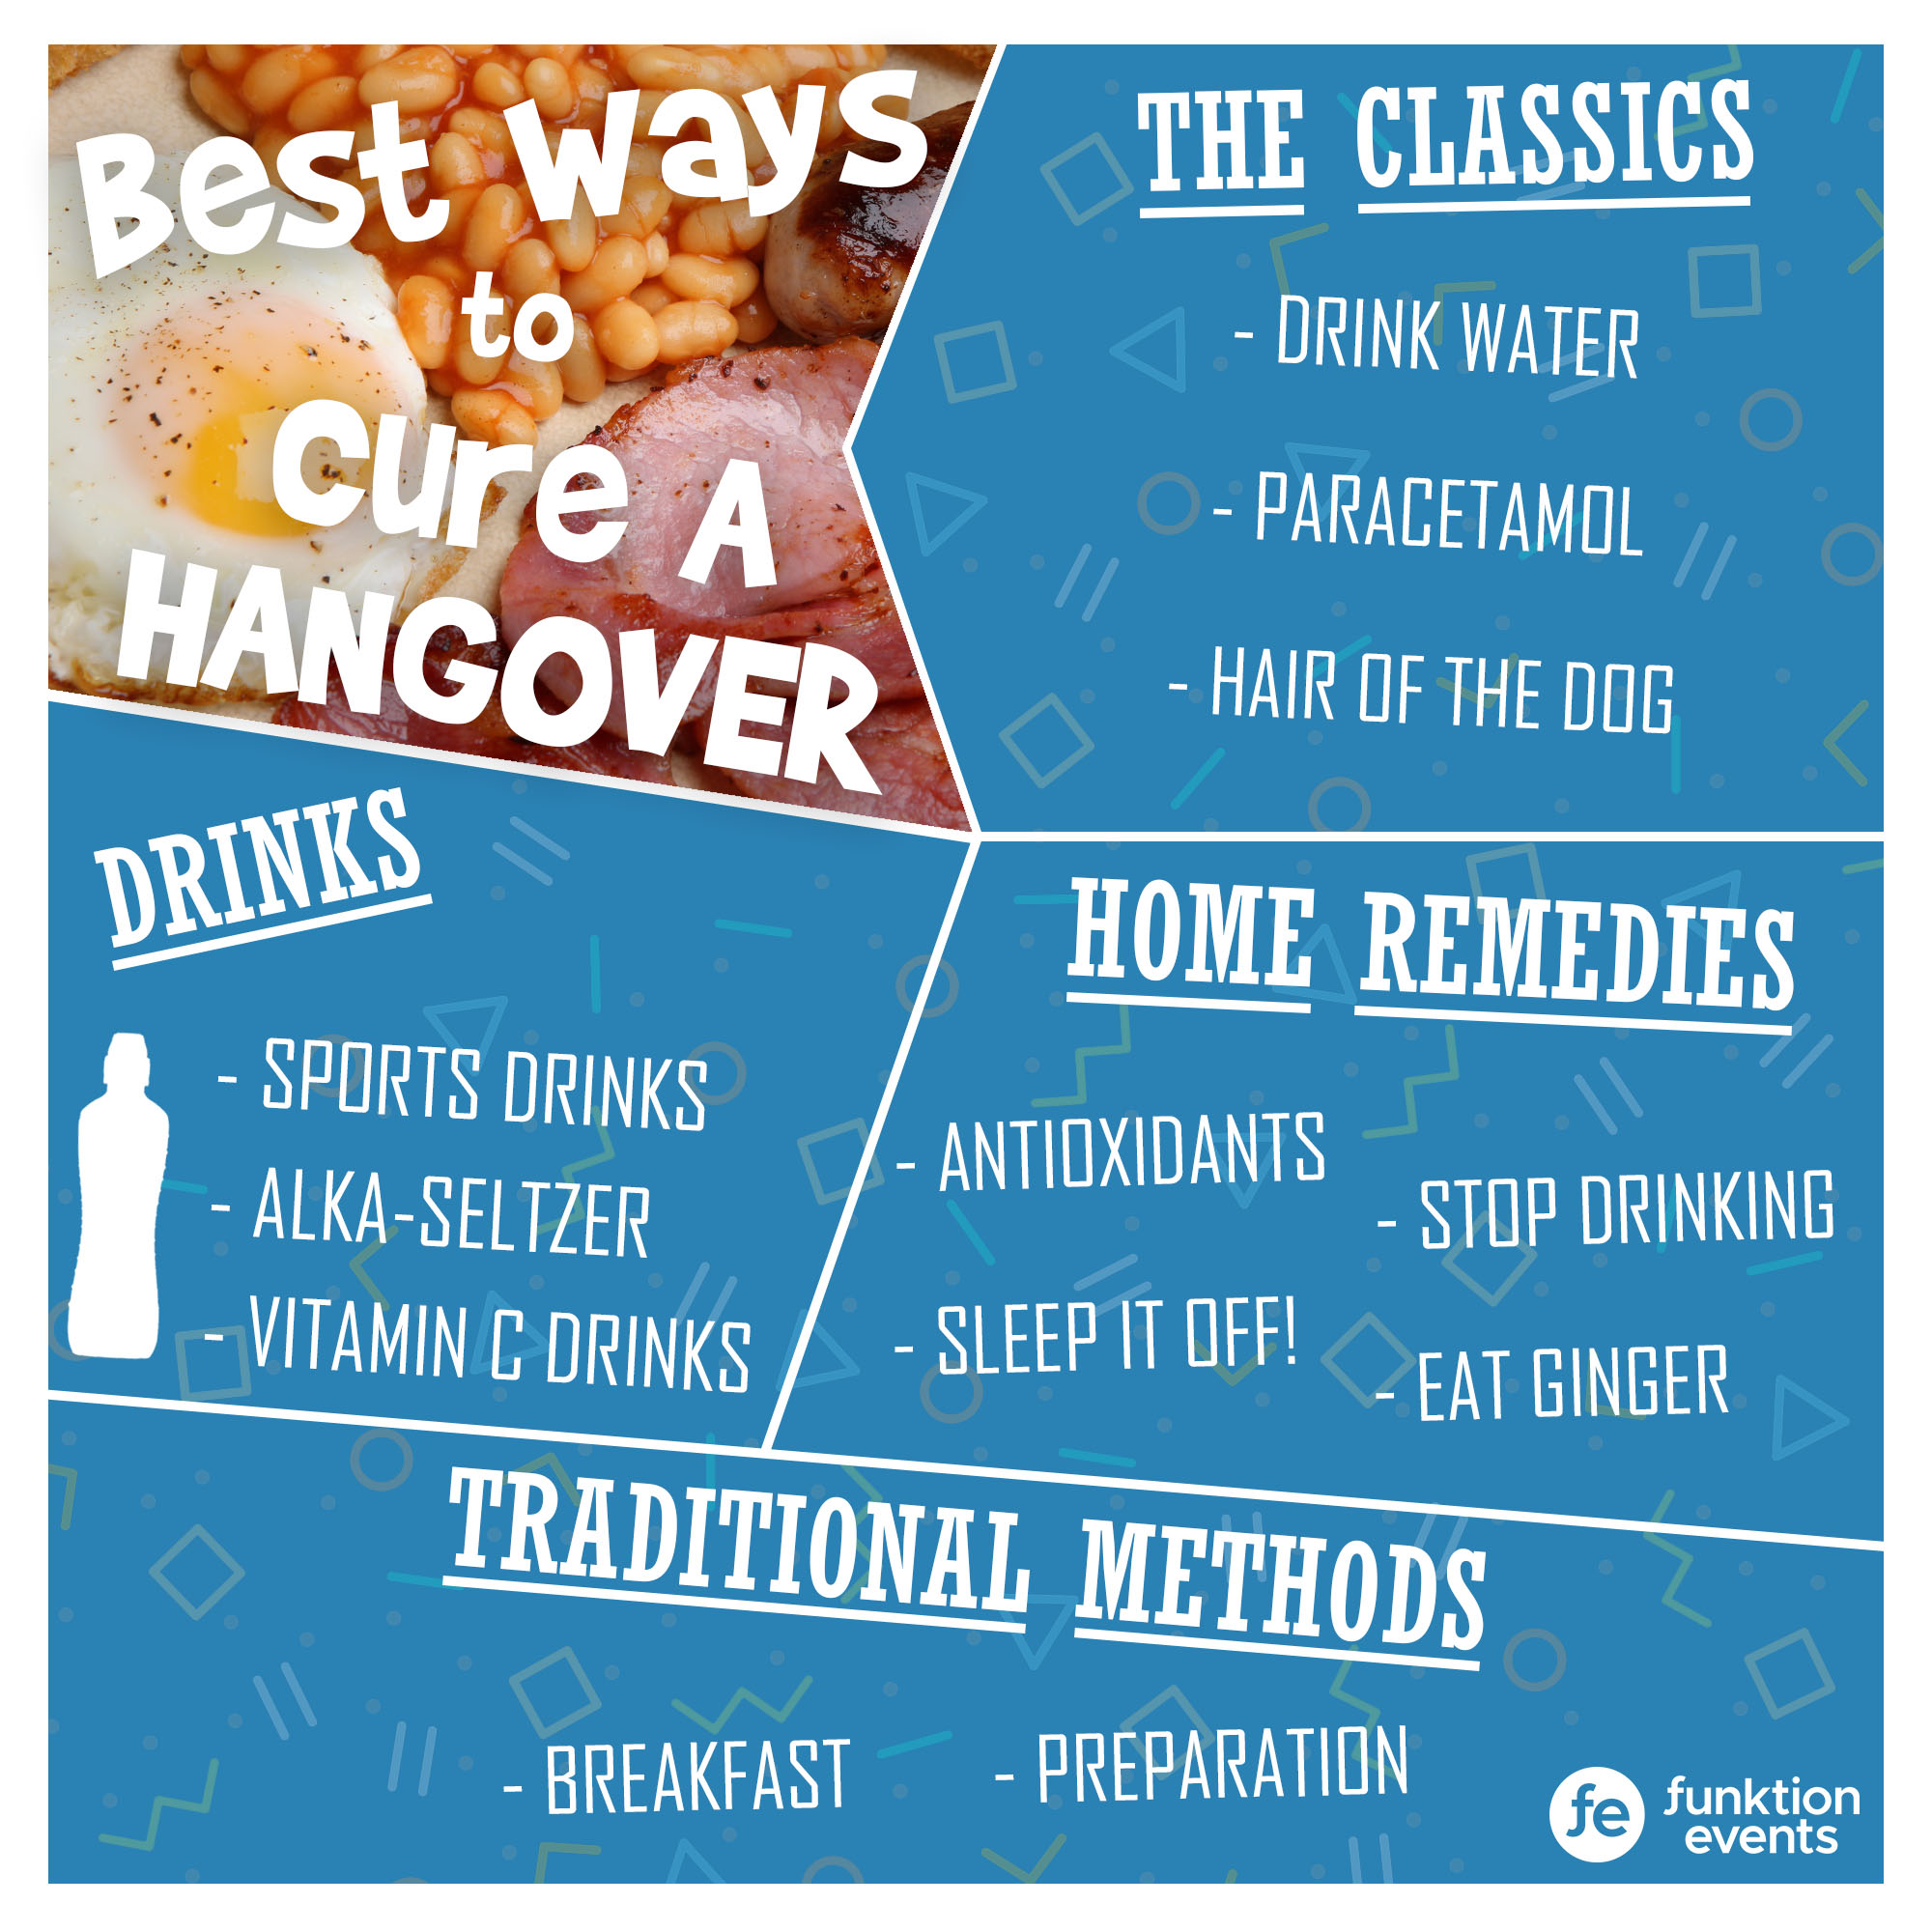 Best Ways to Cure a Hangover?